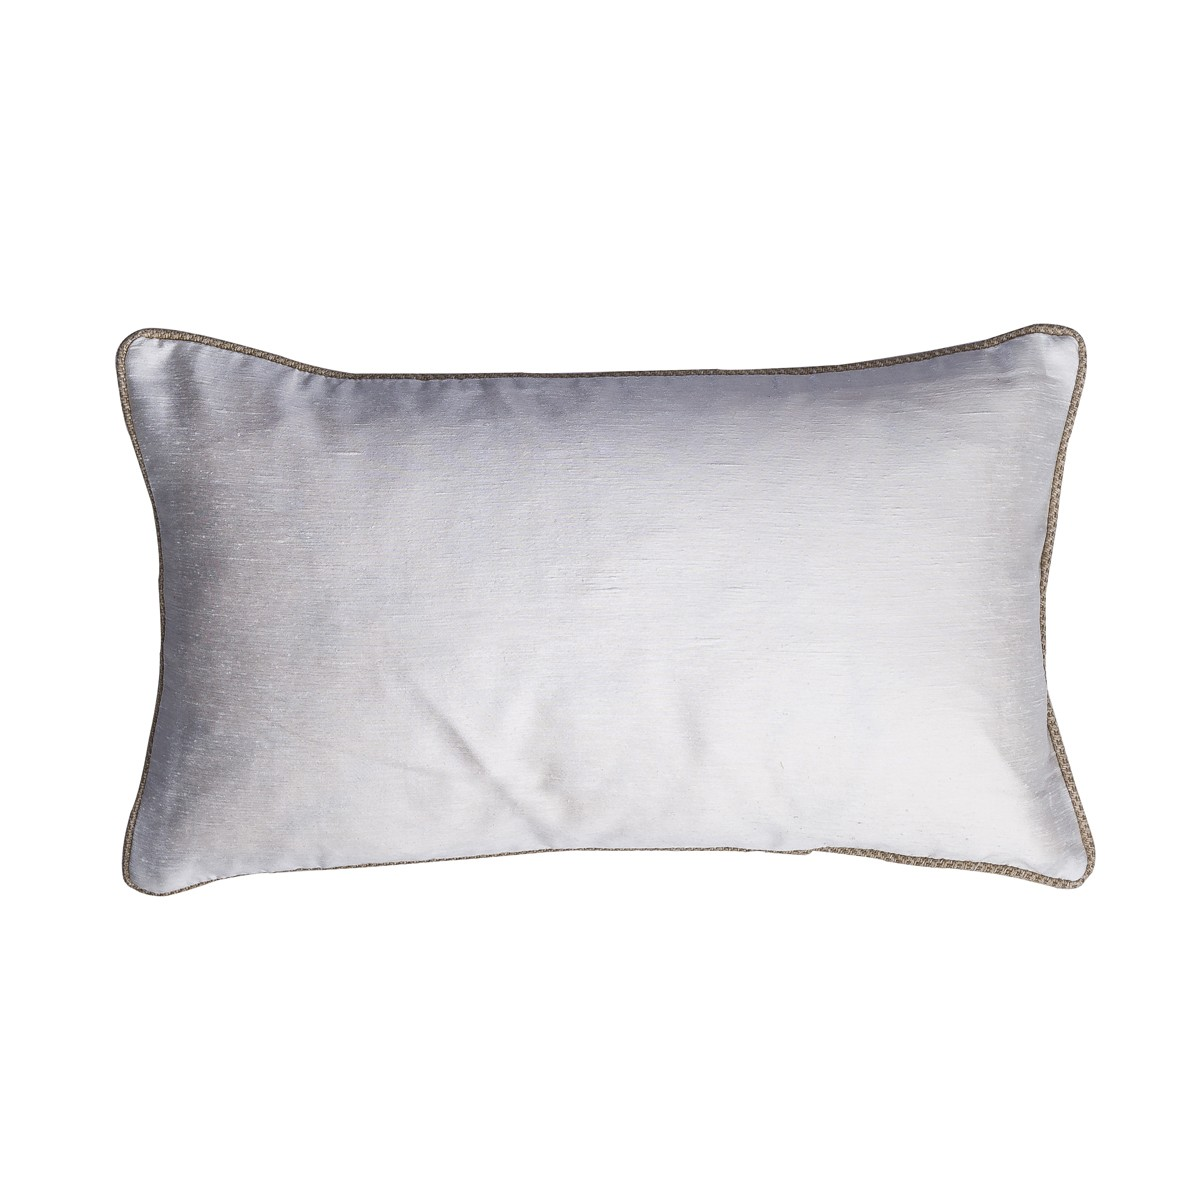 Single White cushion Cover